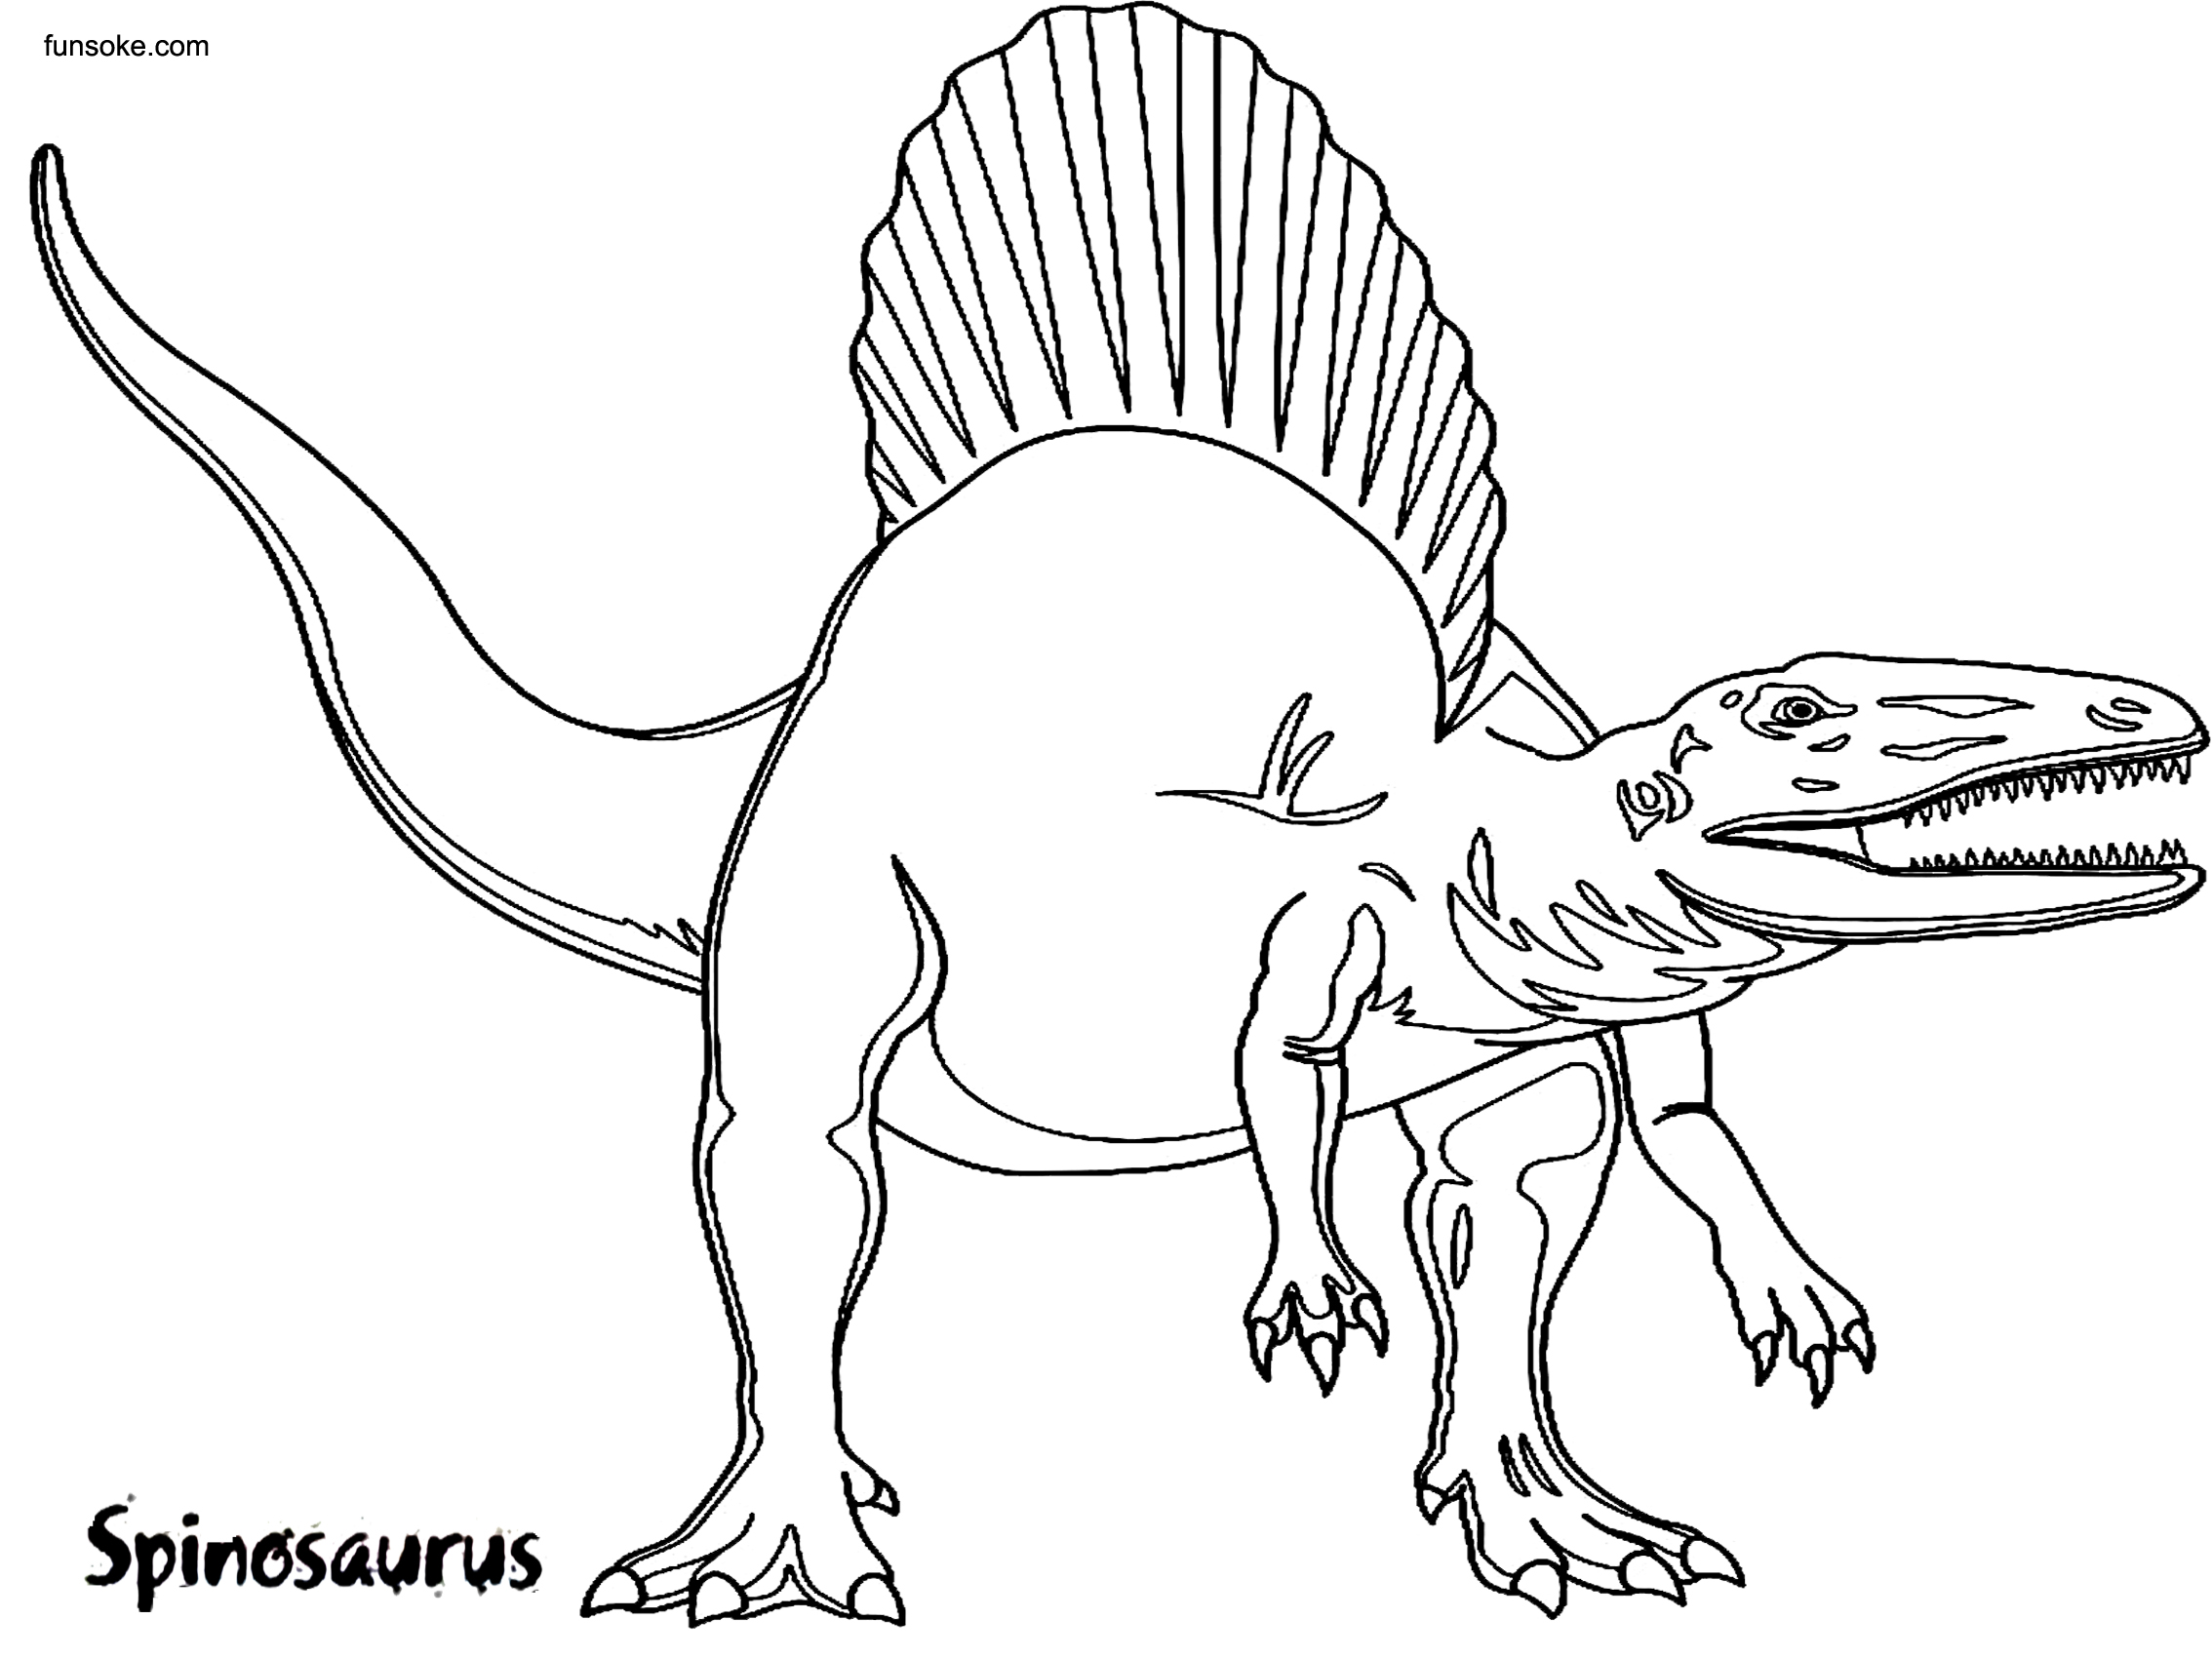 free dinosaur pictures to print and color free printable dinosaur coloring pages at getdrawings dinosaur to free and print pictures color